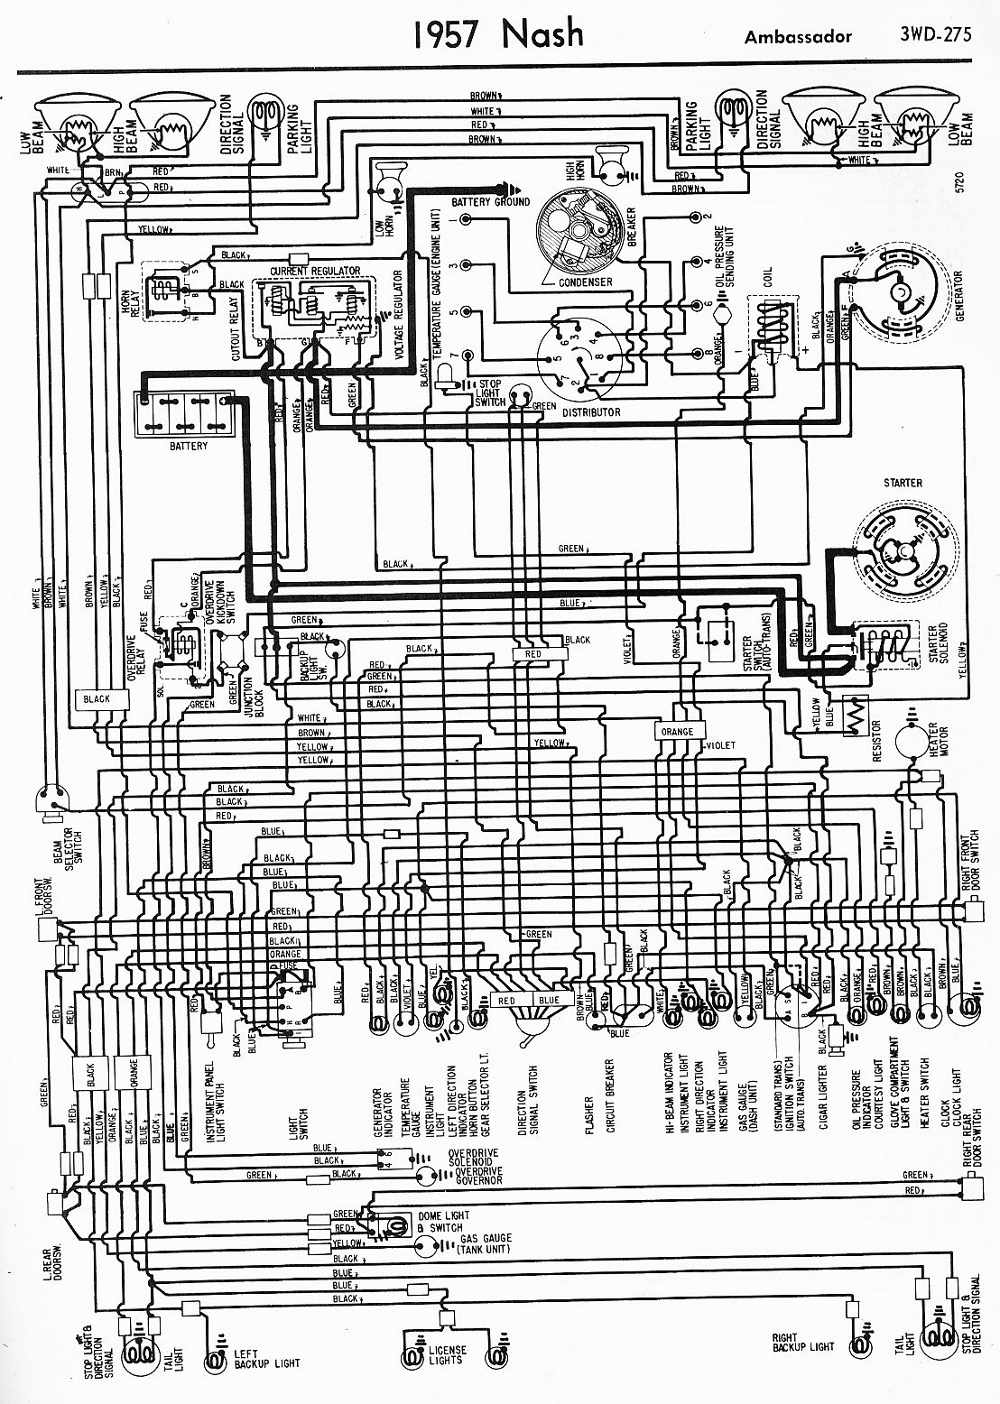 1951 Packard Wiring Diagram Trusted Diagrams 1953 Plymouth Cranbrook 1950 Basic U2022 Nissan